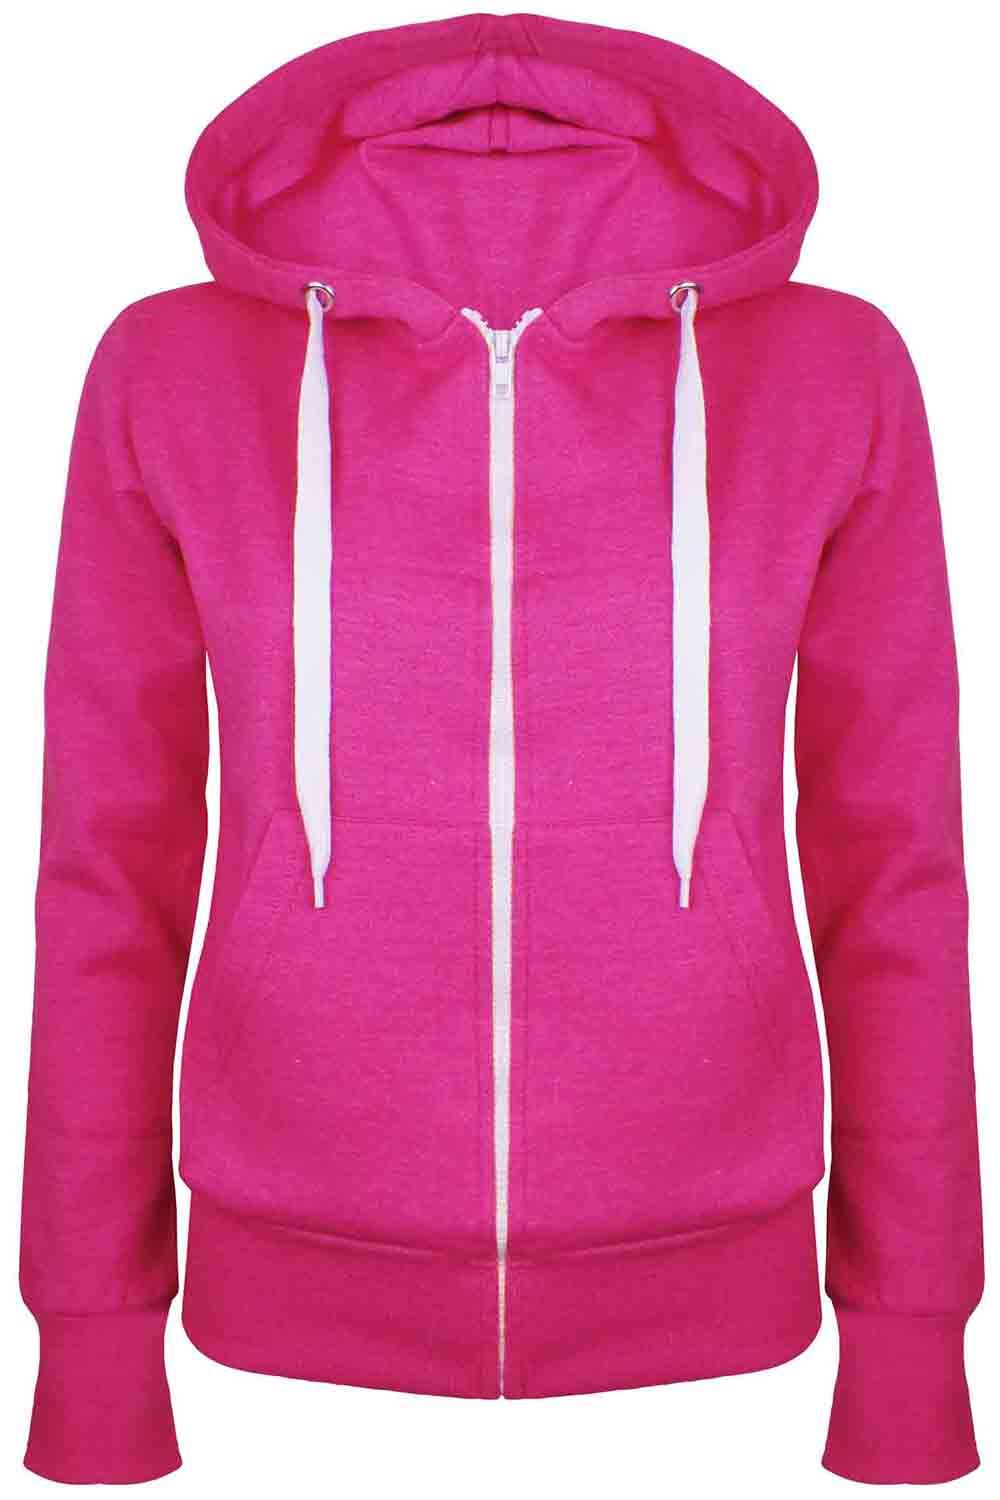 Free shipping hoodies for women online store. Best hoodies for women for sale. Cheap hoodies for women with excellent quality and fast delivery. | hereufilbk.gq